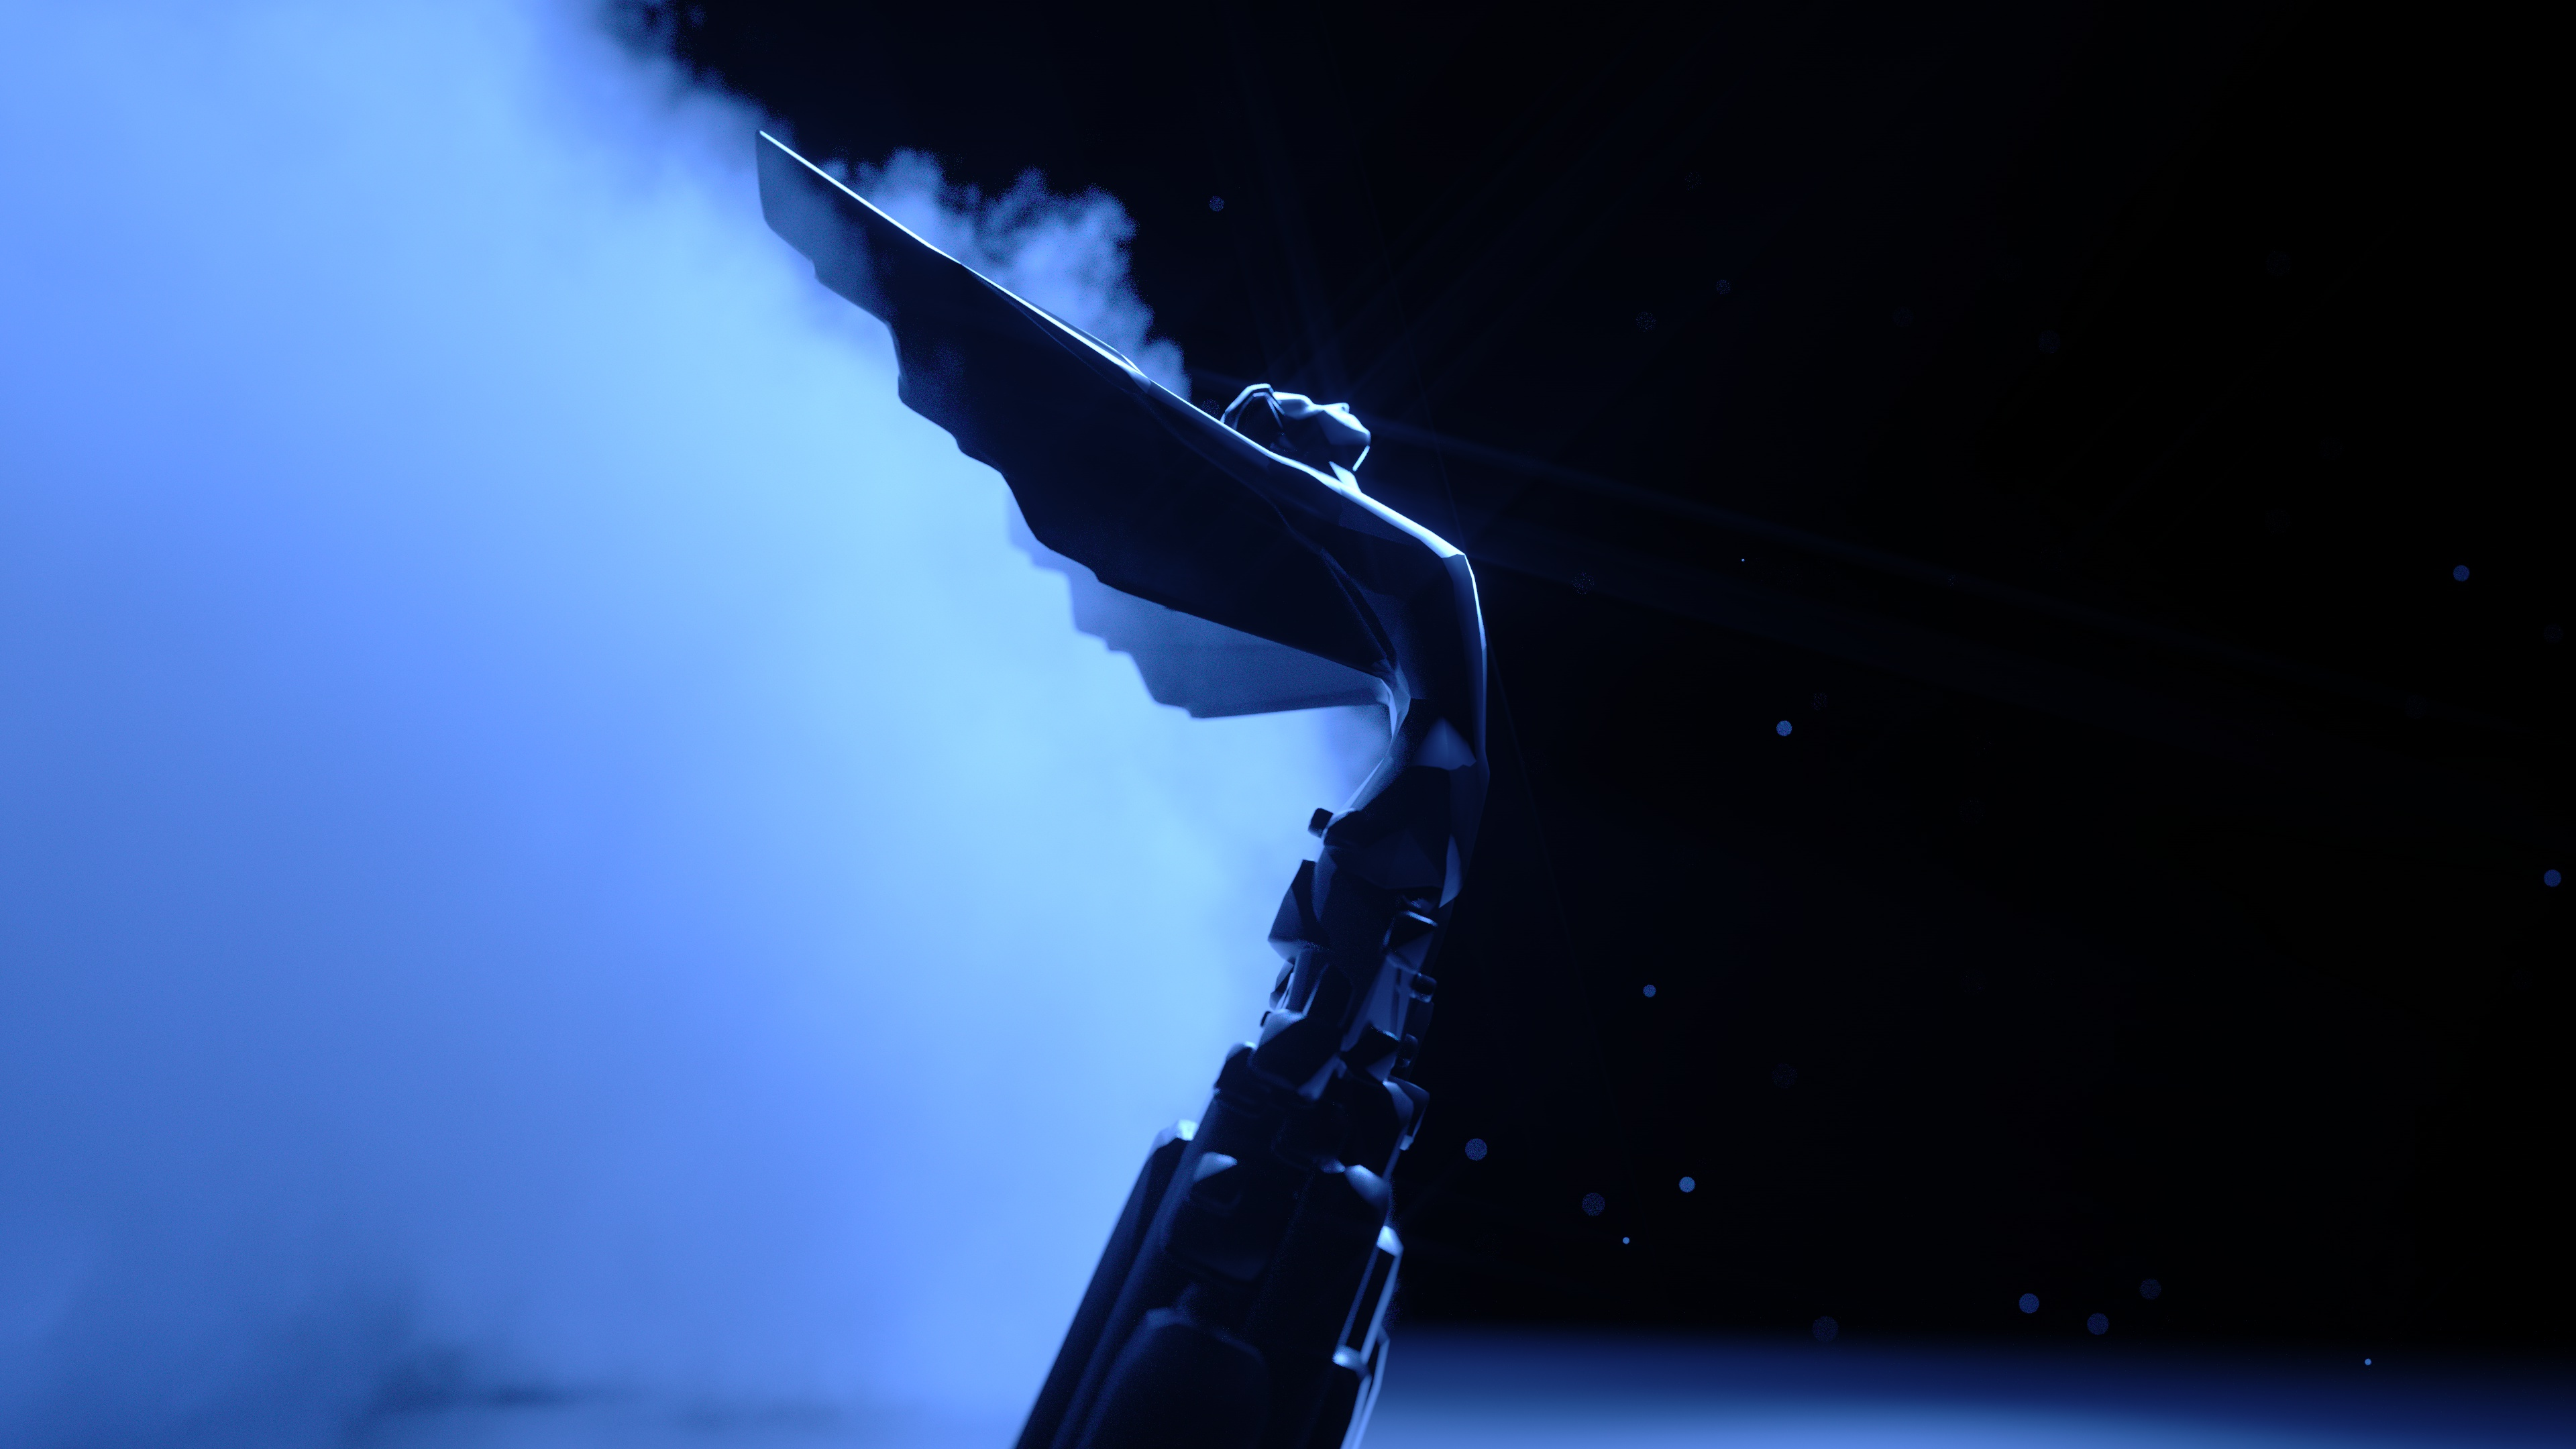 The Game Award on a dark background with smoke